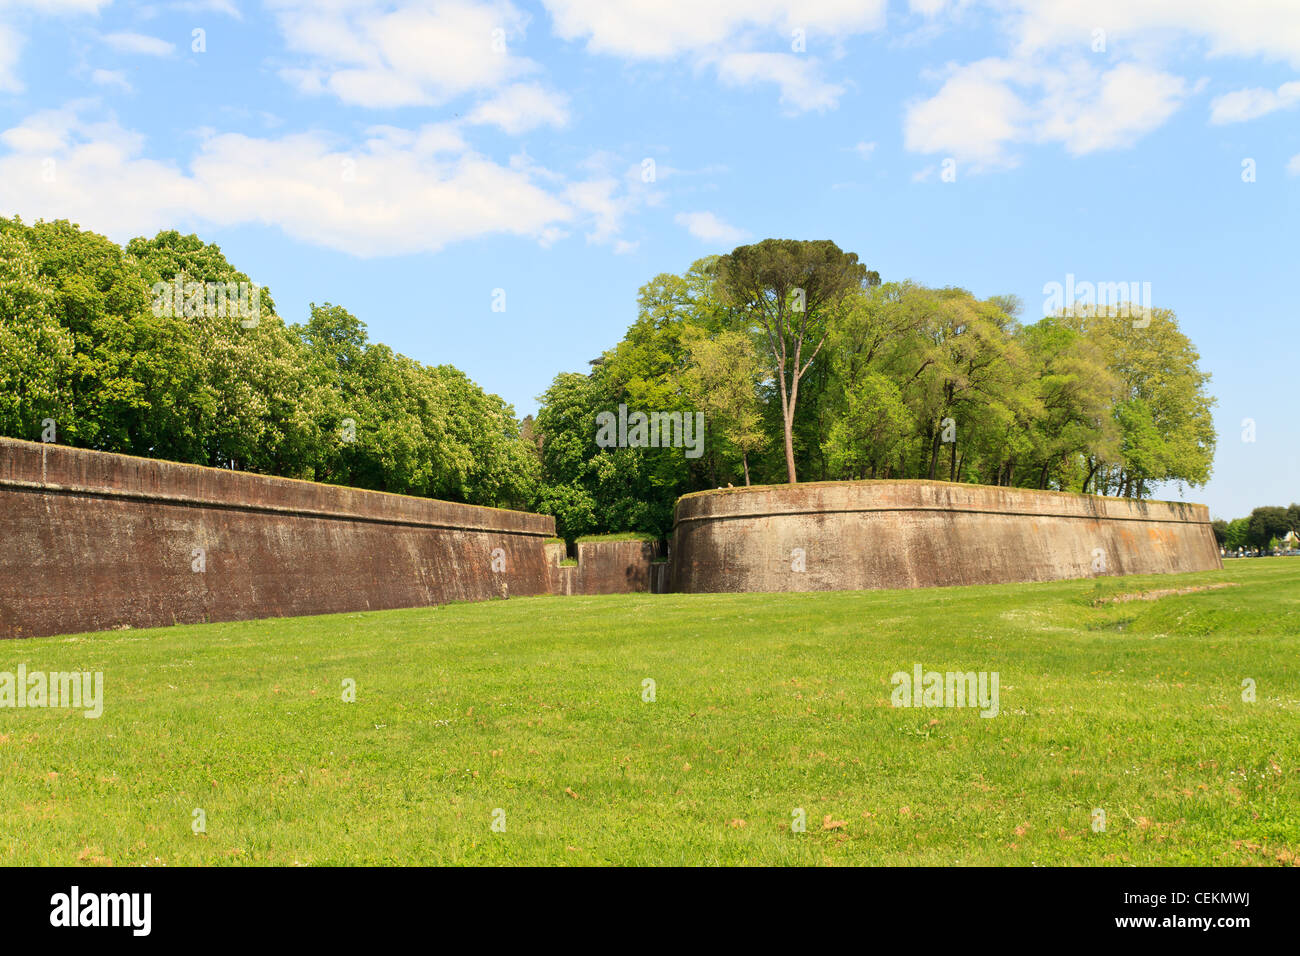 Lucca city wall fortifications in spring, Tuscany, Italy - Stock Image